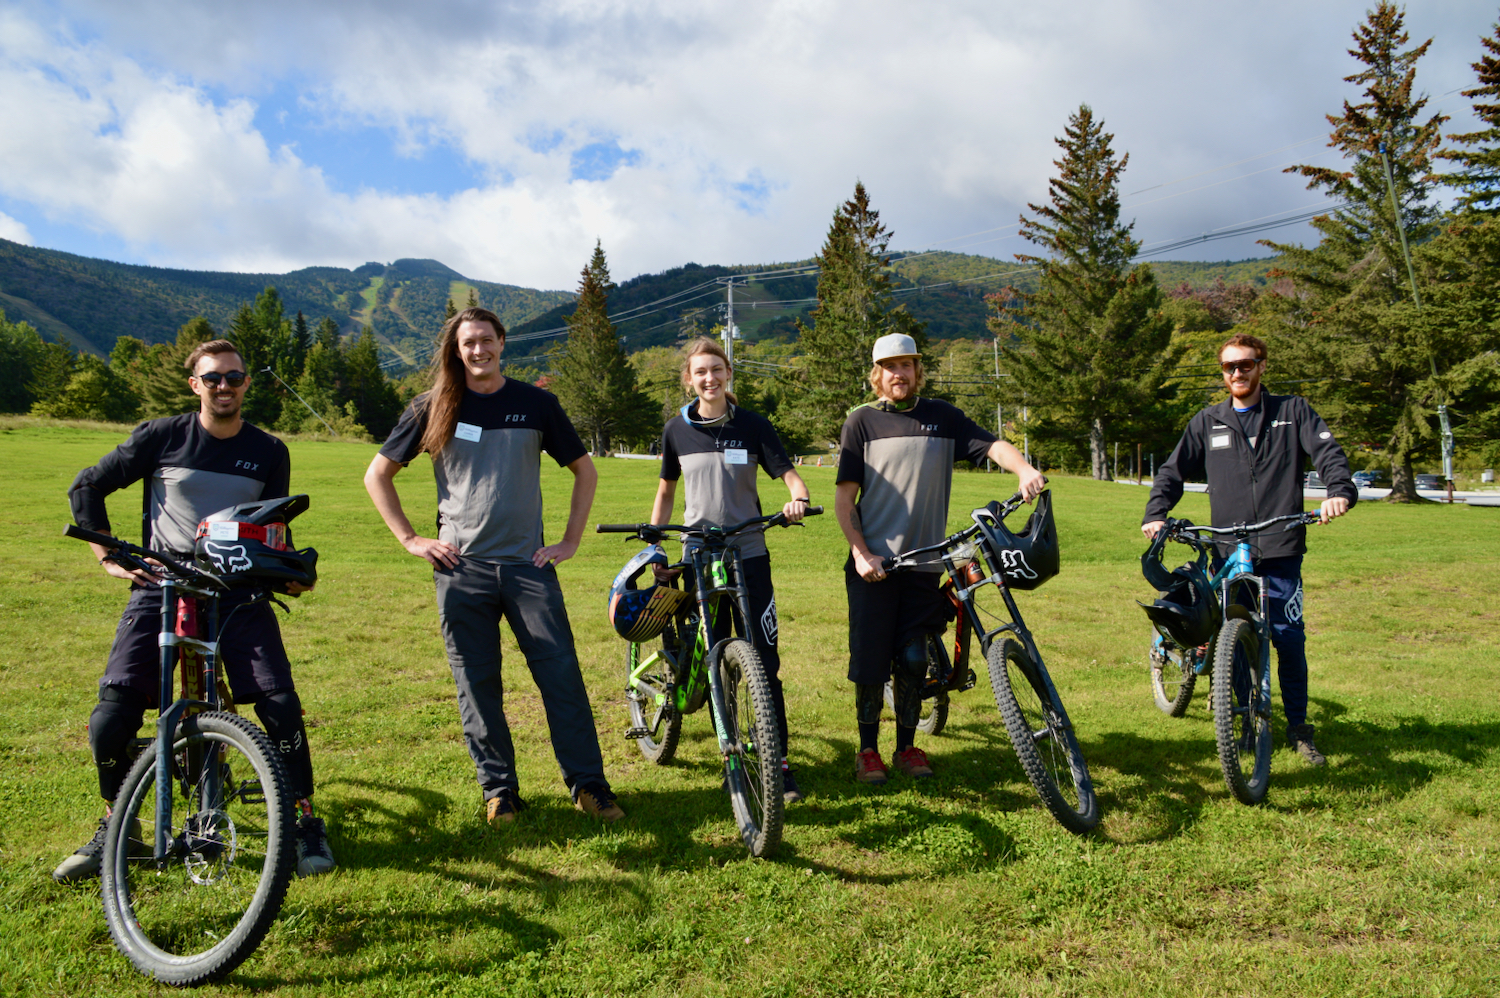 A photo of five mountain bike instructors posing in gray and black shirts with their bikes near the base of Killington.